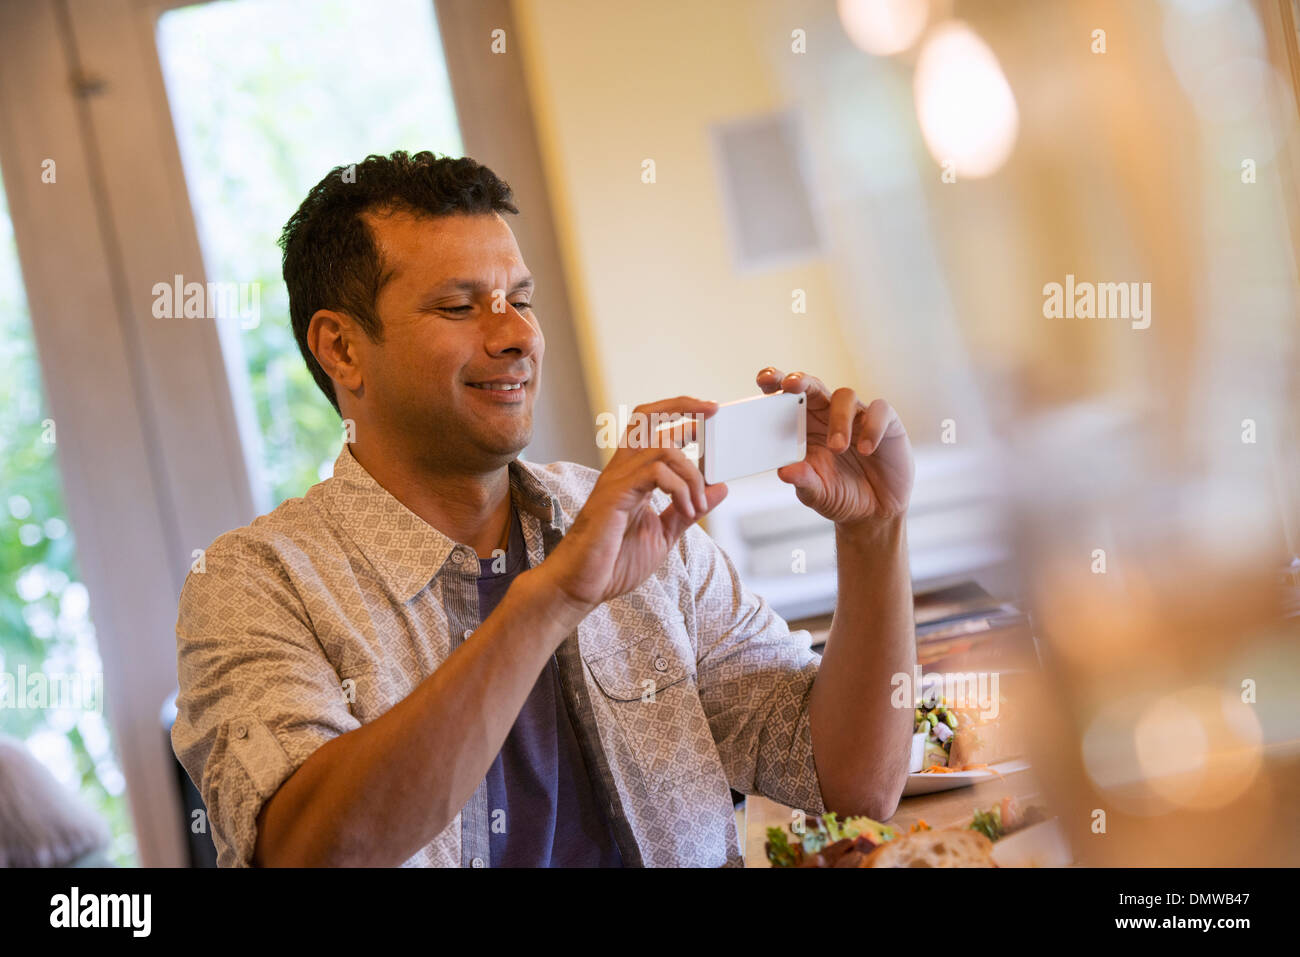 A small holding up a small smart phone. - Stock Image